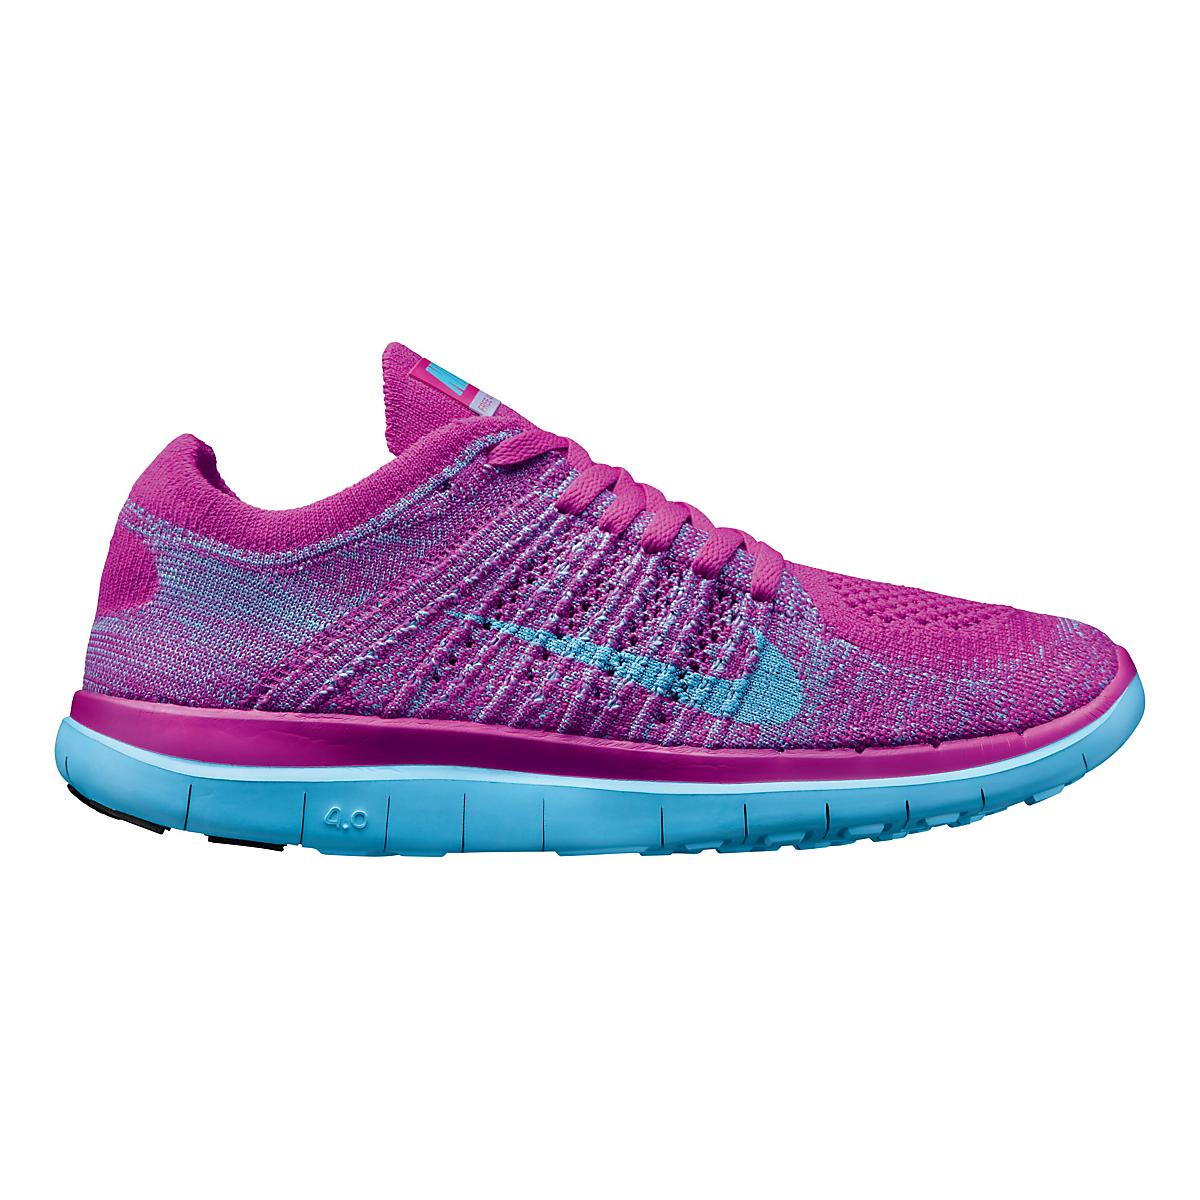 9ca376cc30421 Womens Nike Free 4.0 Flyknit Running Shoe at Road Runner Sports